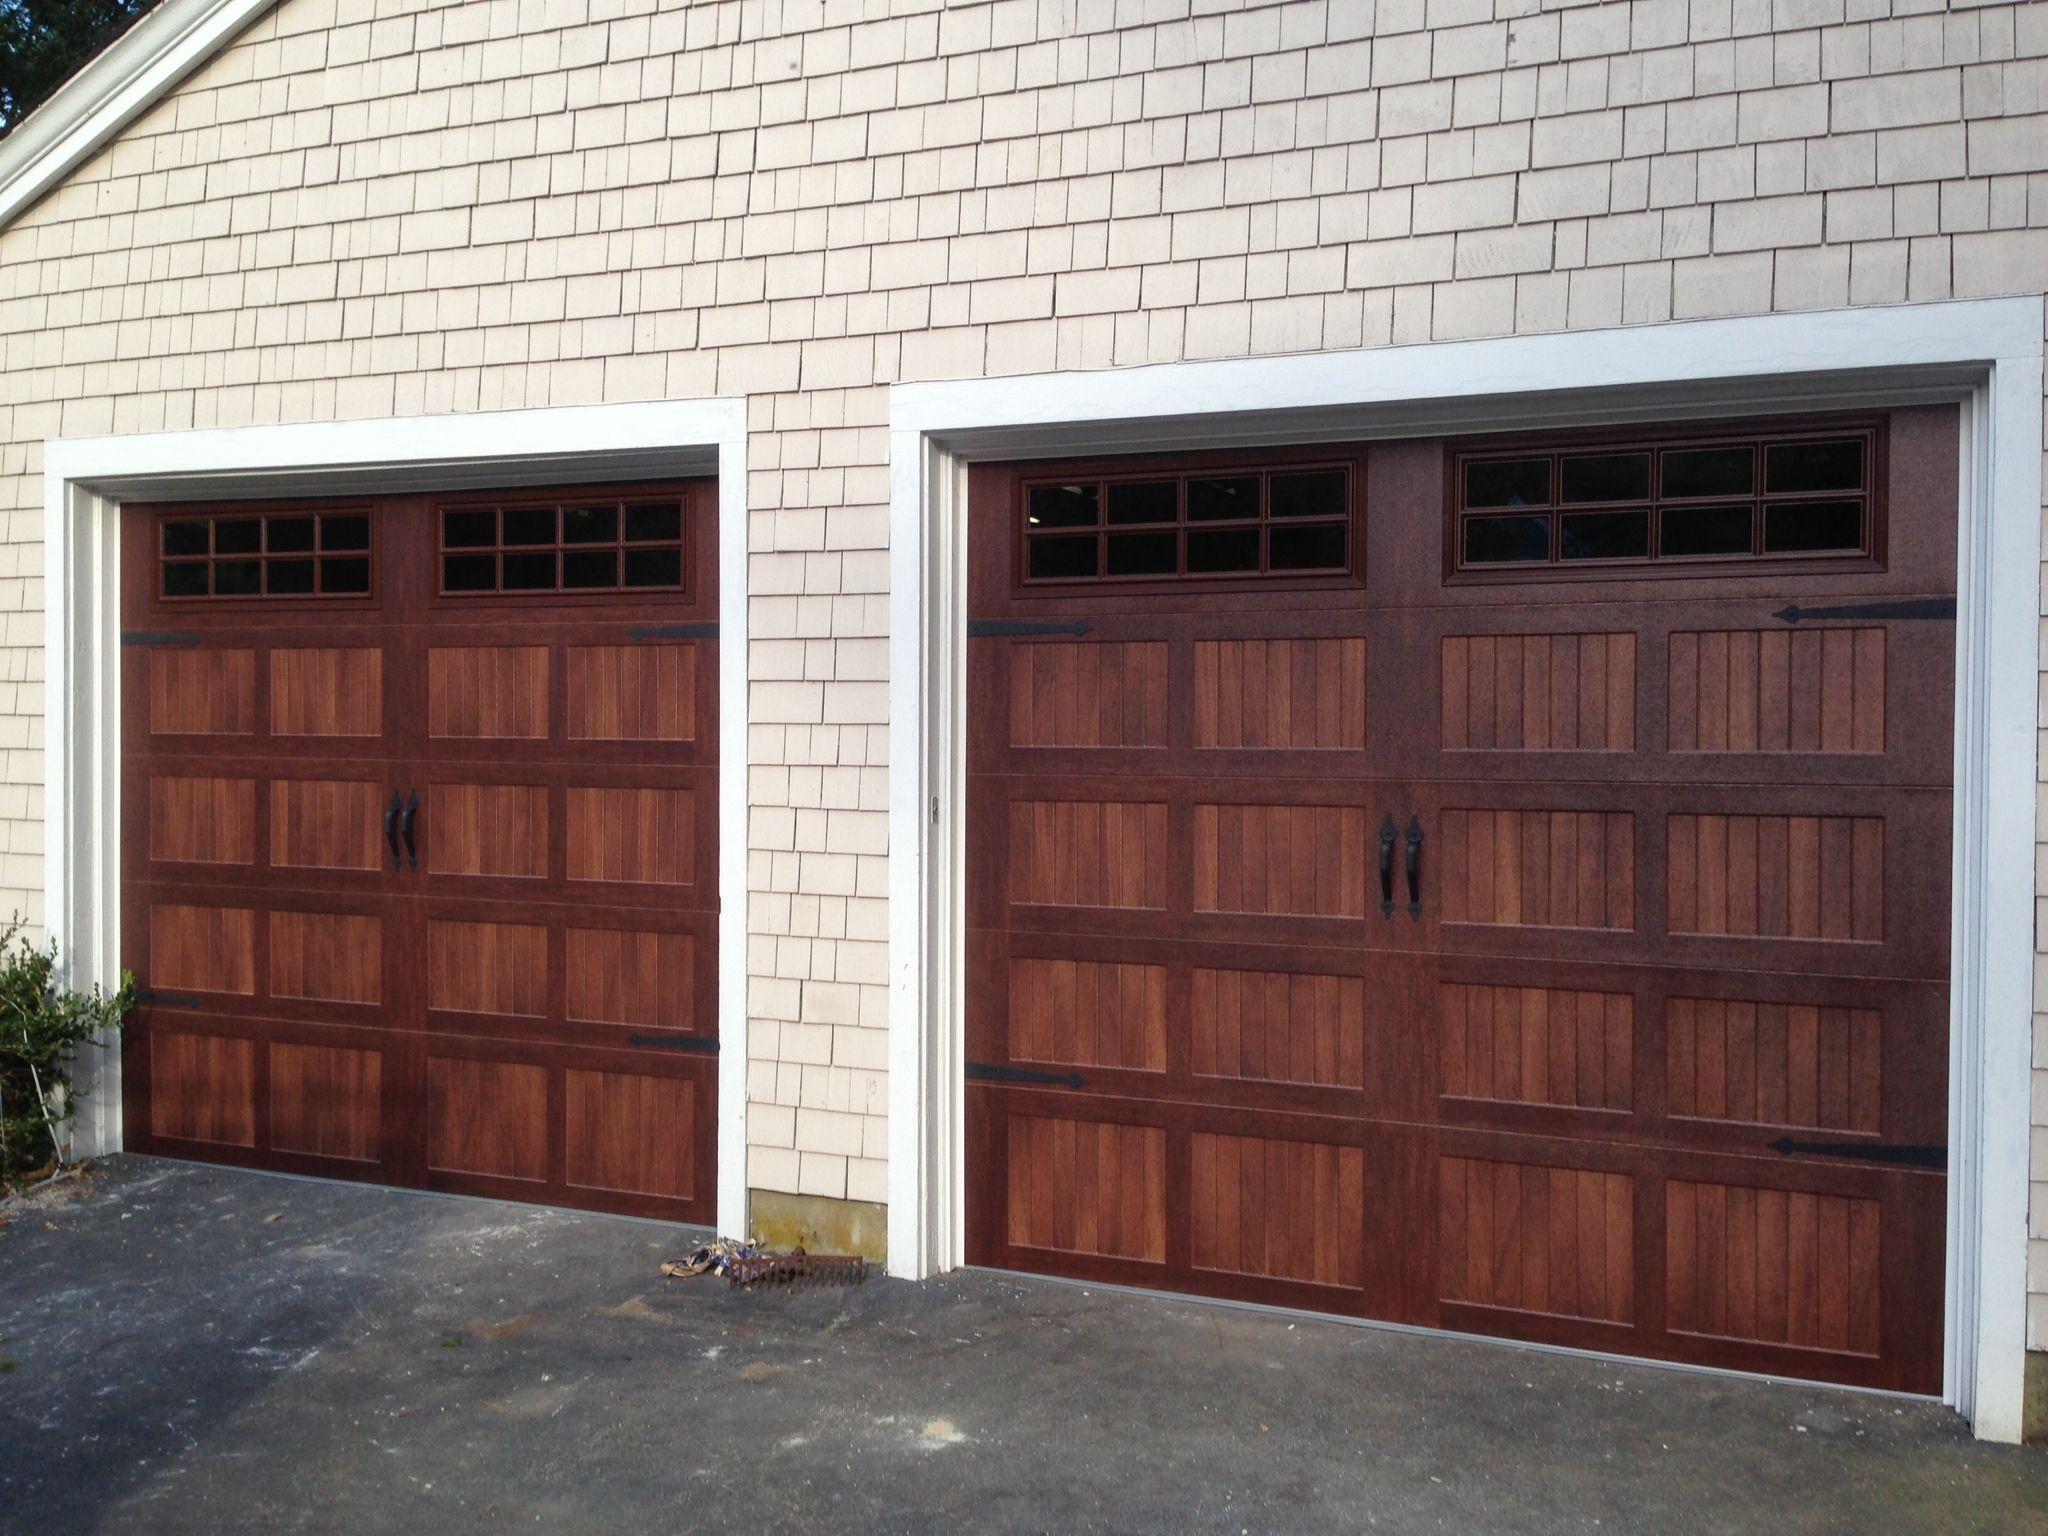 1536 #663A34 Garage Door Maintenance Metal Garages Wood Garage Doors Modern Garage  pic Black Steel Garage Doors 36512048